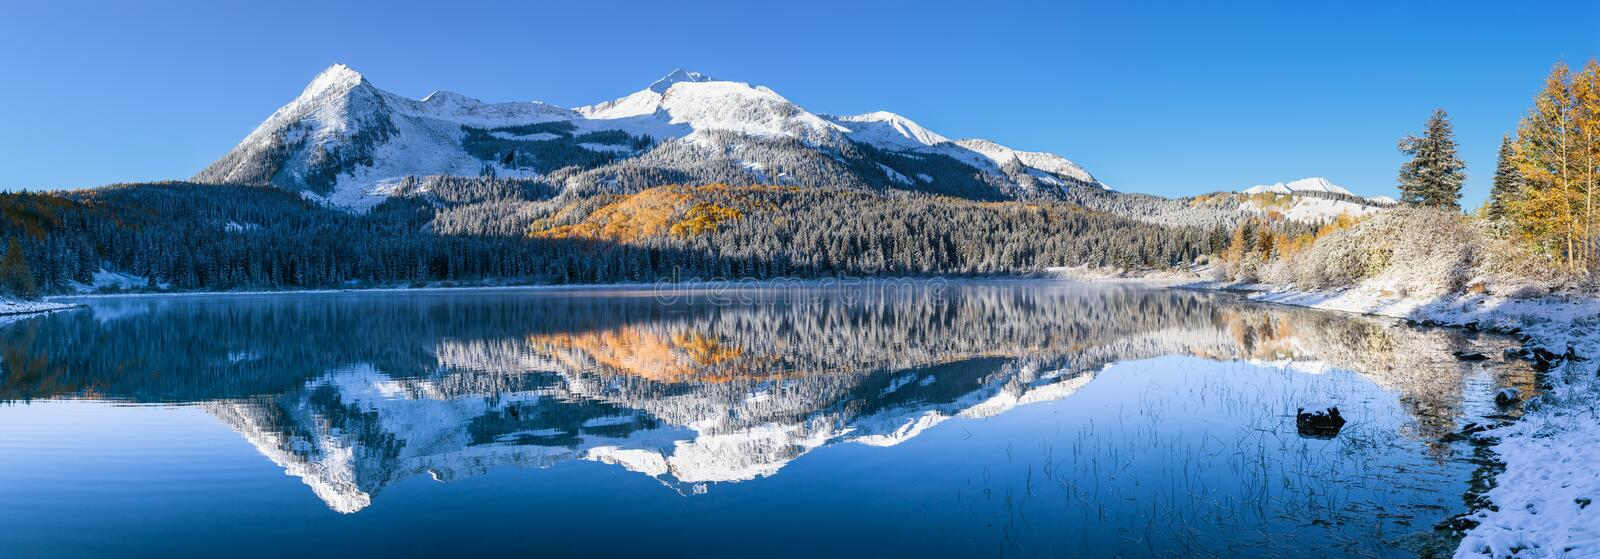 Colorado Autumn Color at Lost Lake on Kebler Pass. Autumn Color on Kebler Pass in the Colorado Rocky Mountains stock image